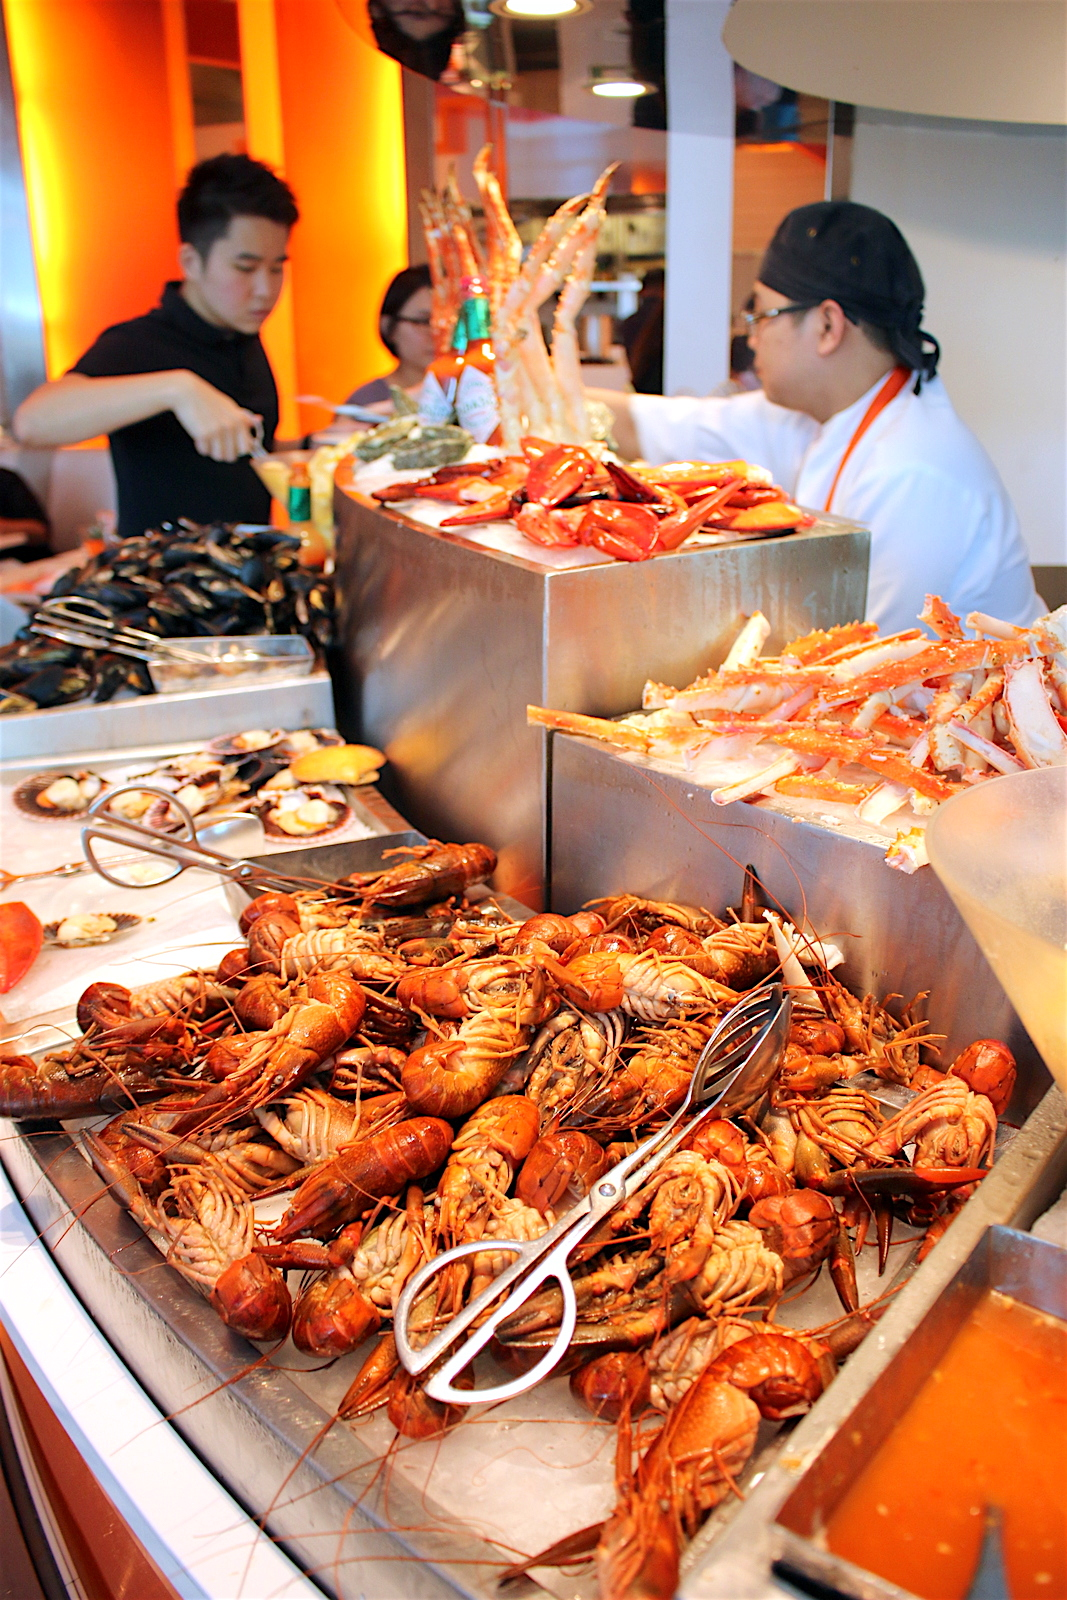 Shangri La Cafe Too Lunch Buffet Price